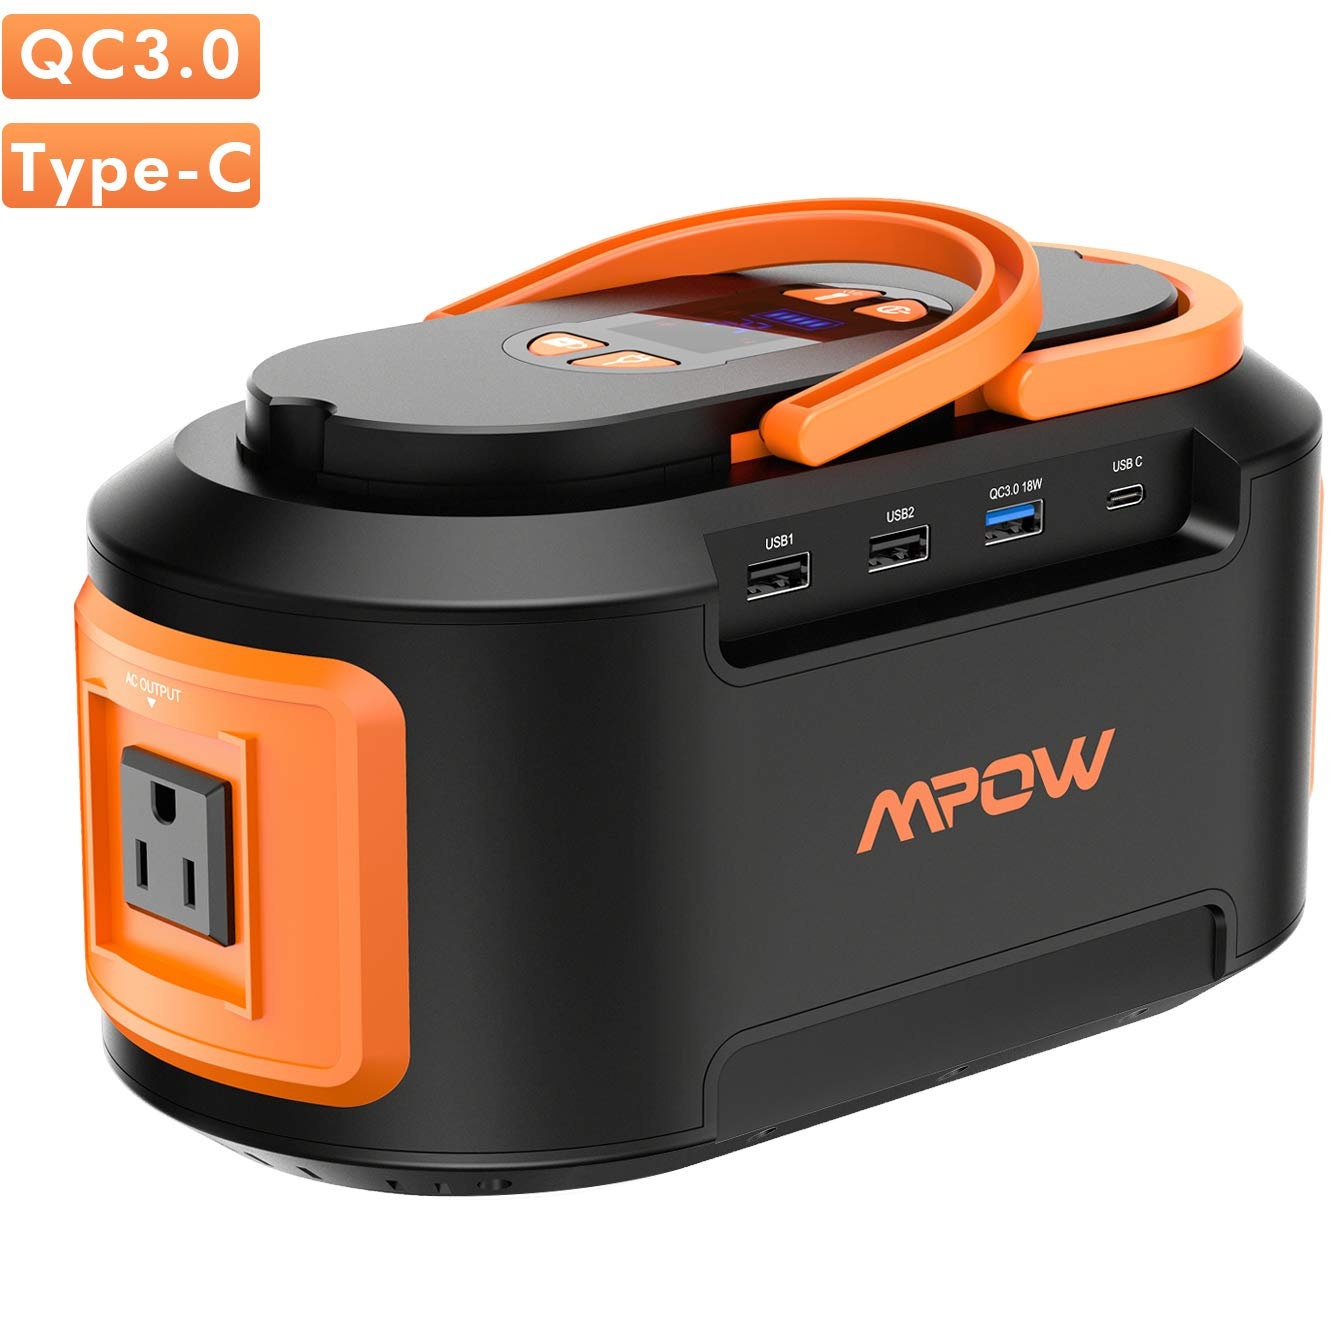 OMORC Mpow 222Wh 60000mAh Portable Power Stations, 4 USB (Quick Charger 3.0 & Type C), 4 DC Ports, 300V(Peak) AC Outlets,LED Lights,Solar Inverter Generators Battery Backup for CPAP Camping Fishing